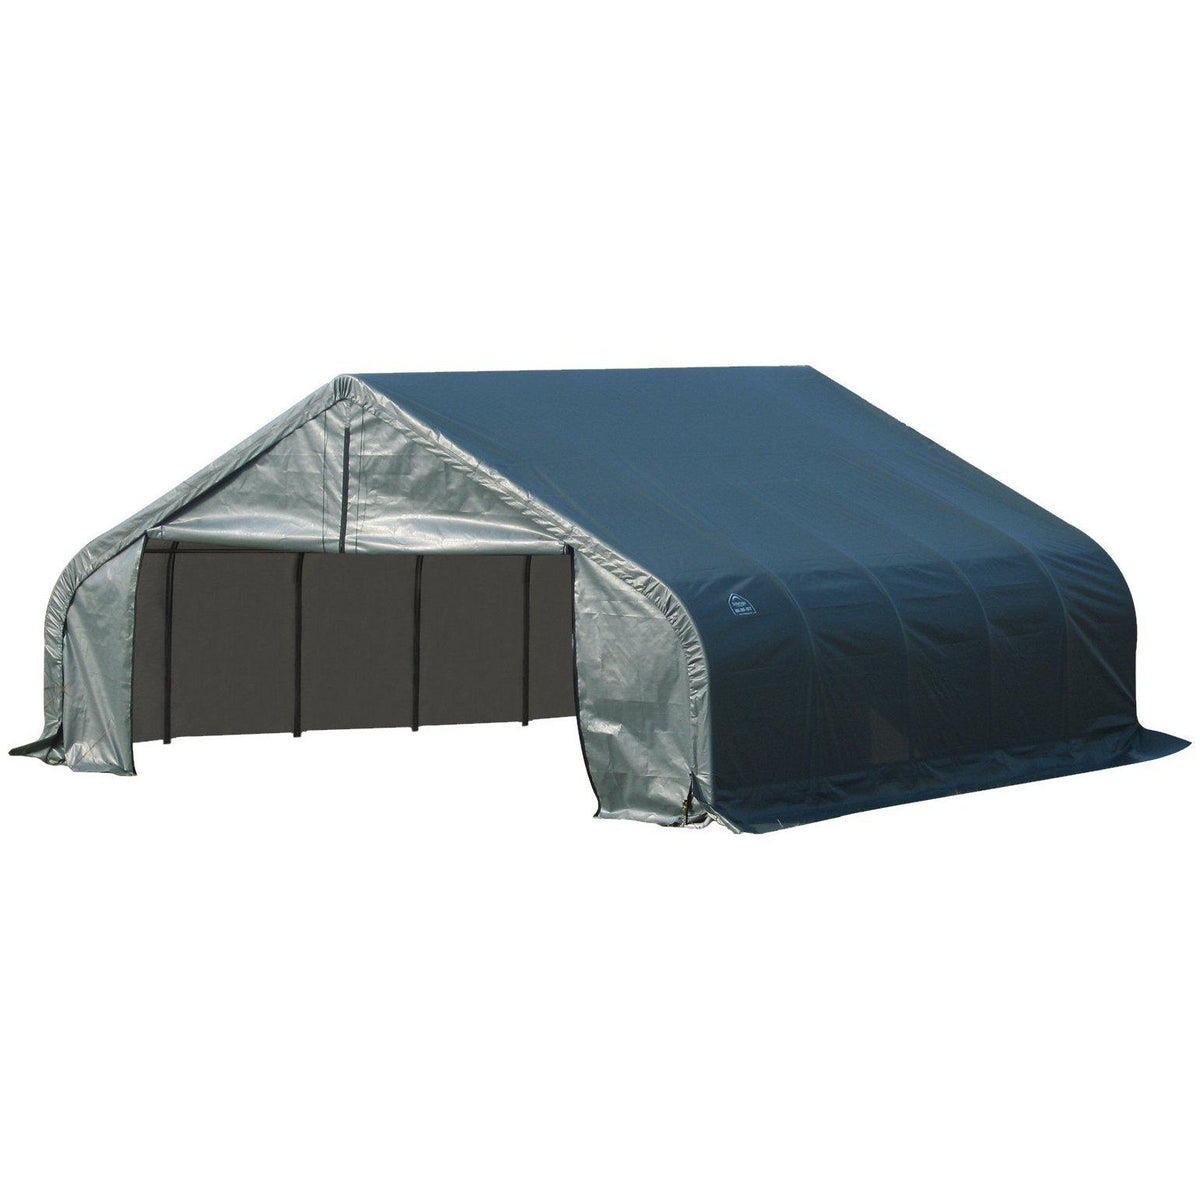 ShelterLogic 80021 Green 18'x24'x12' Peak Style Shelter